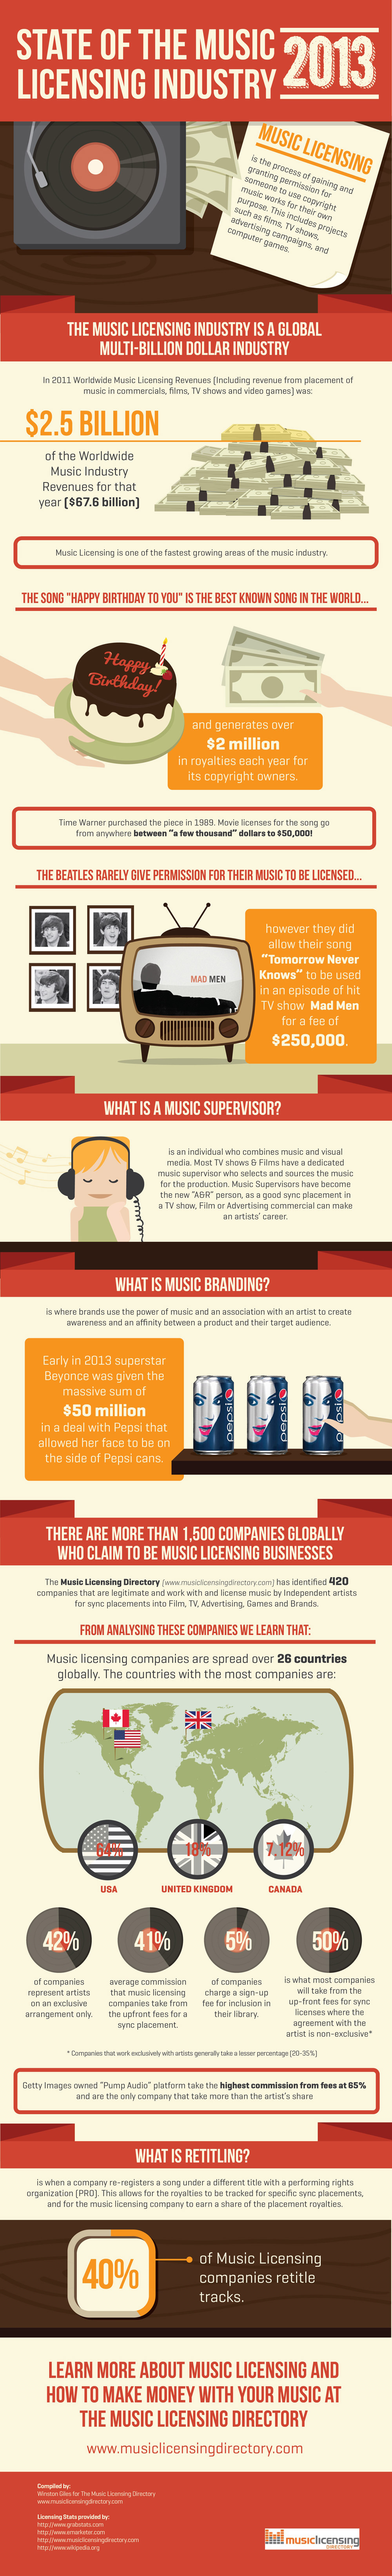 Music Licensing Infographic